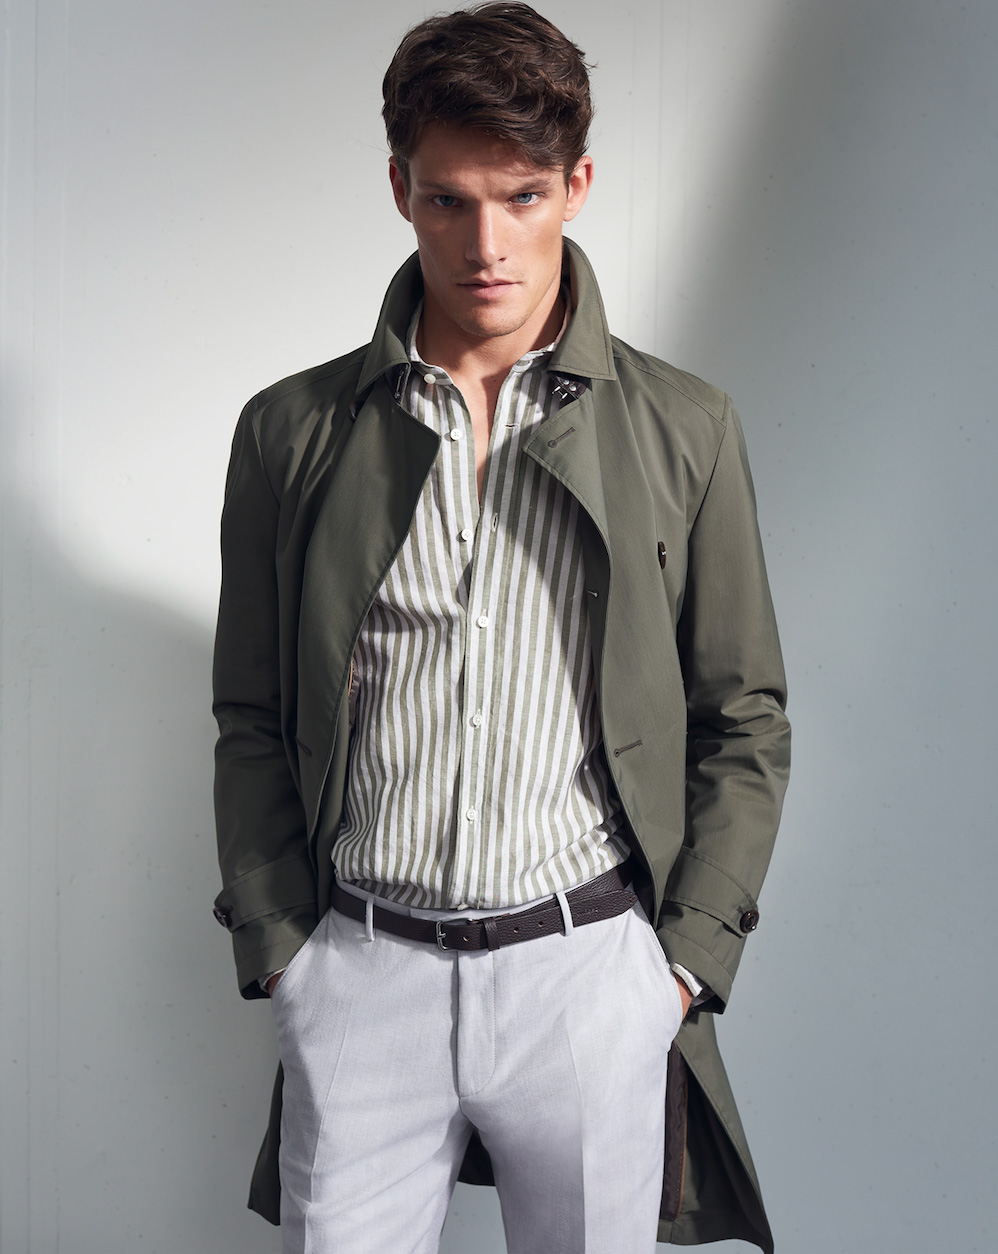 Brown Jacket Male Fashion Windsor Lookbook